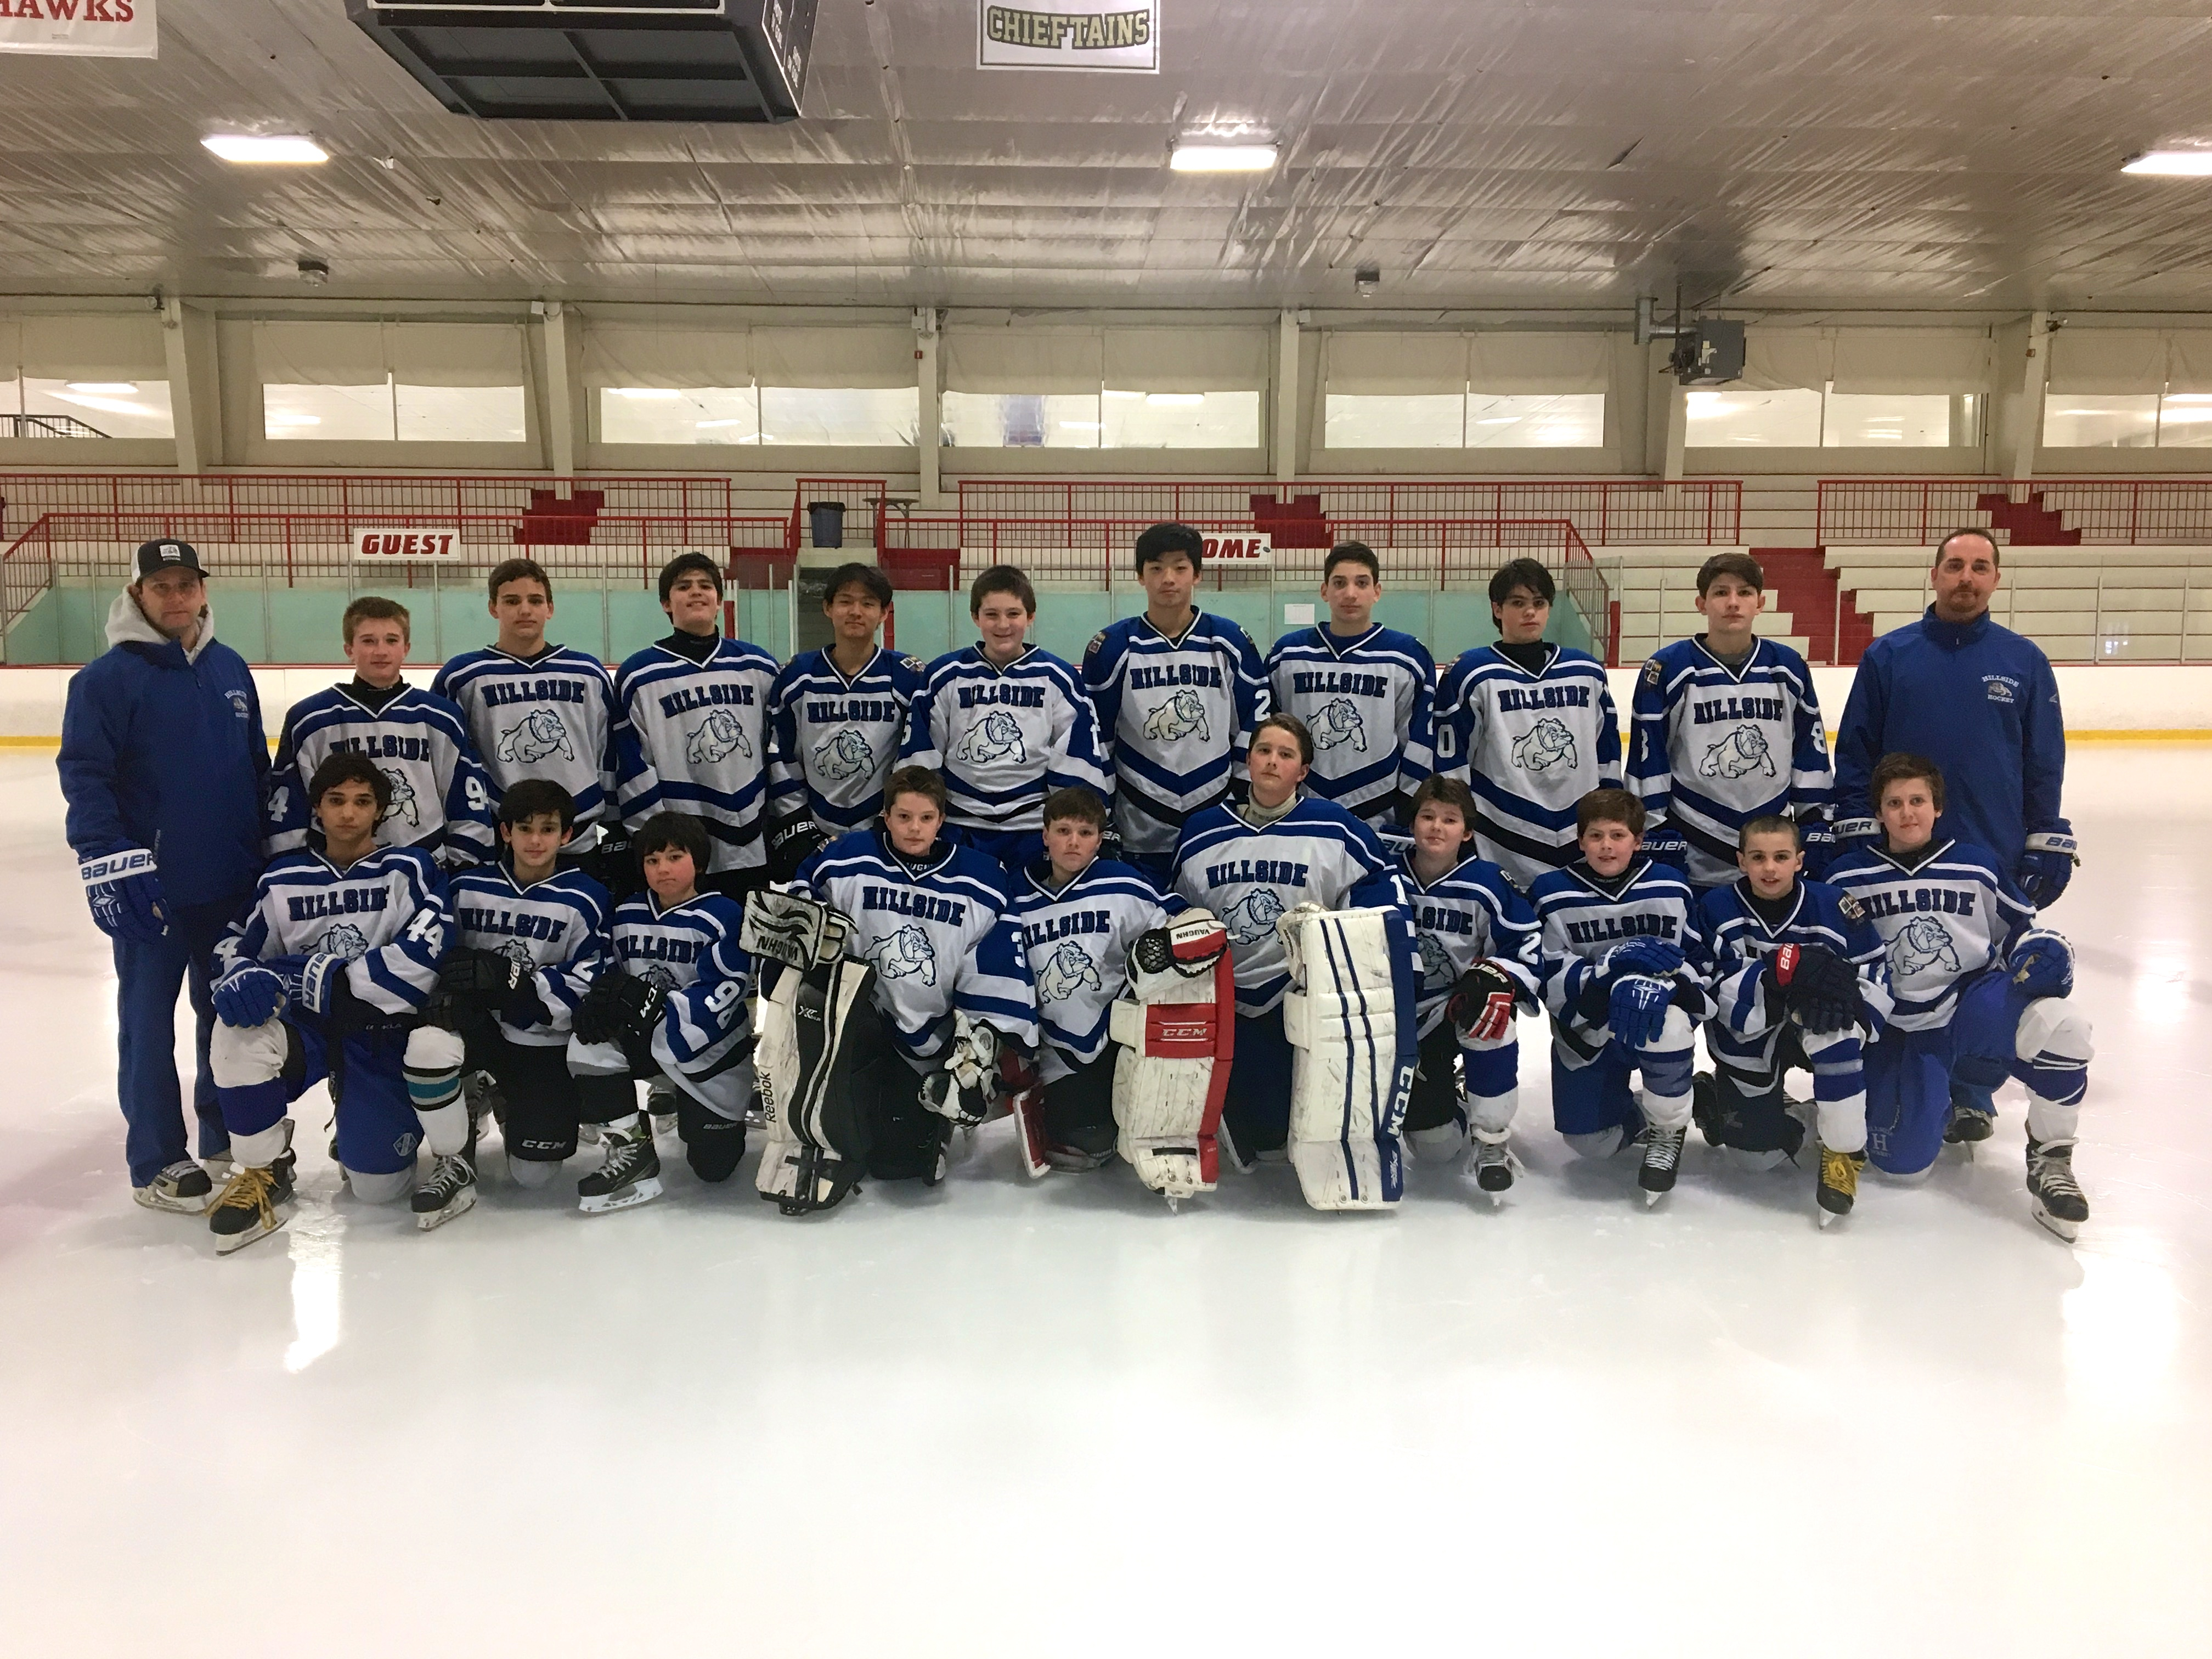 Hillside School Varsity Development Program Ice Hockey